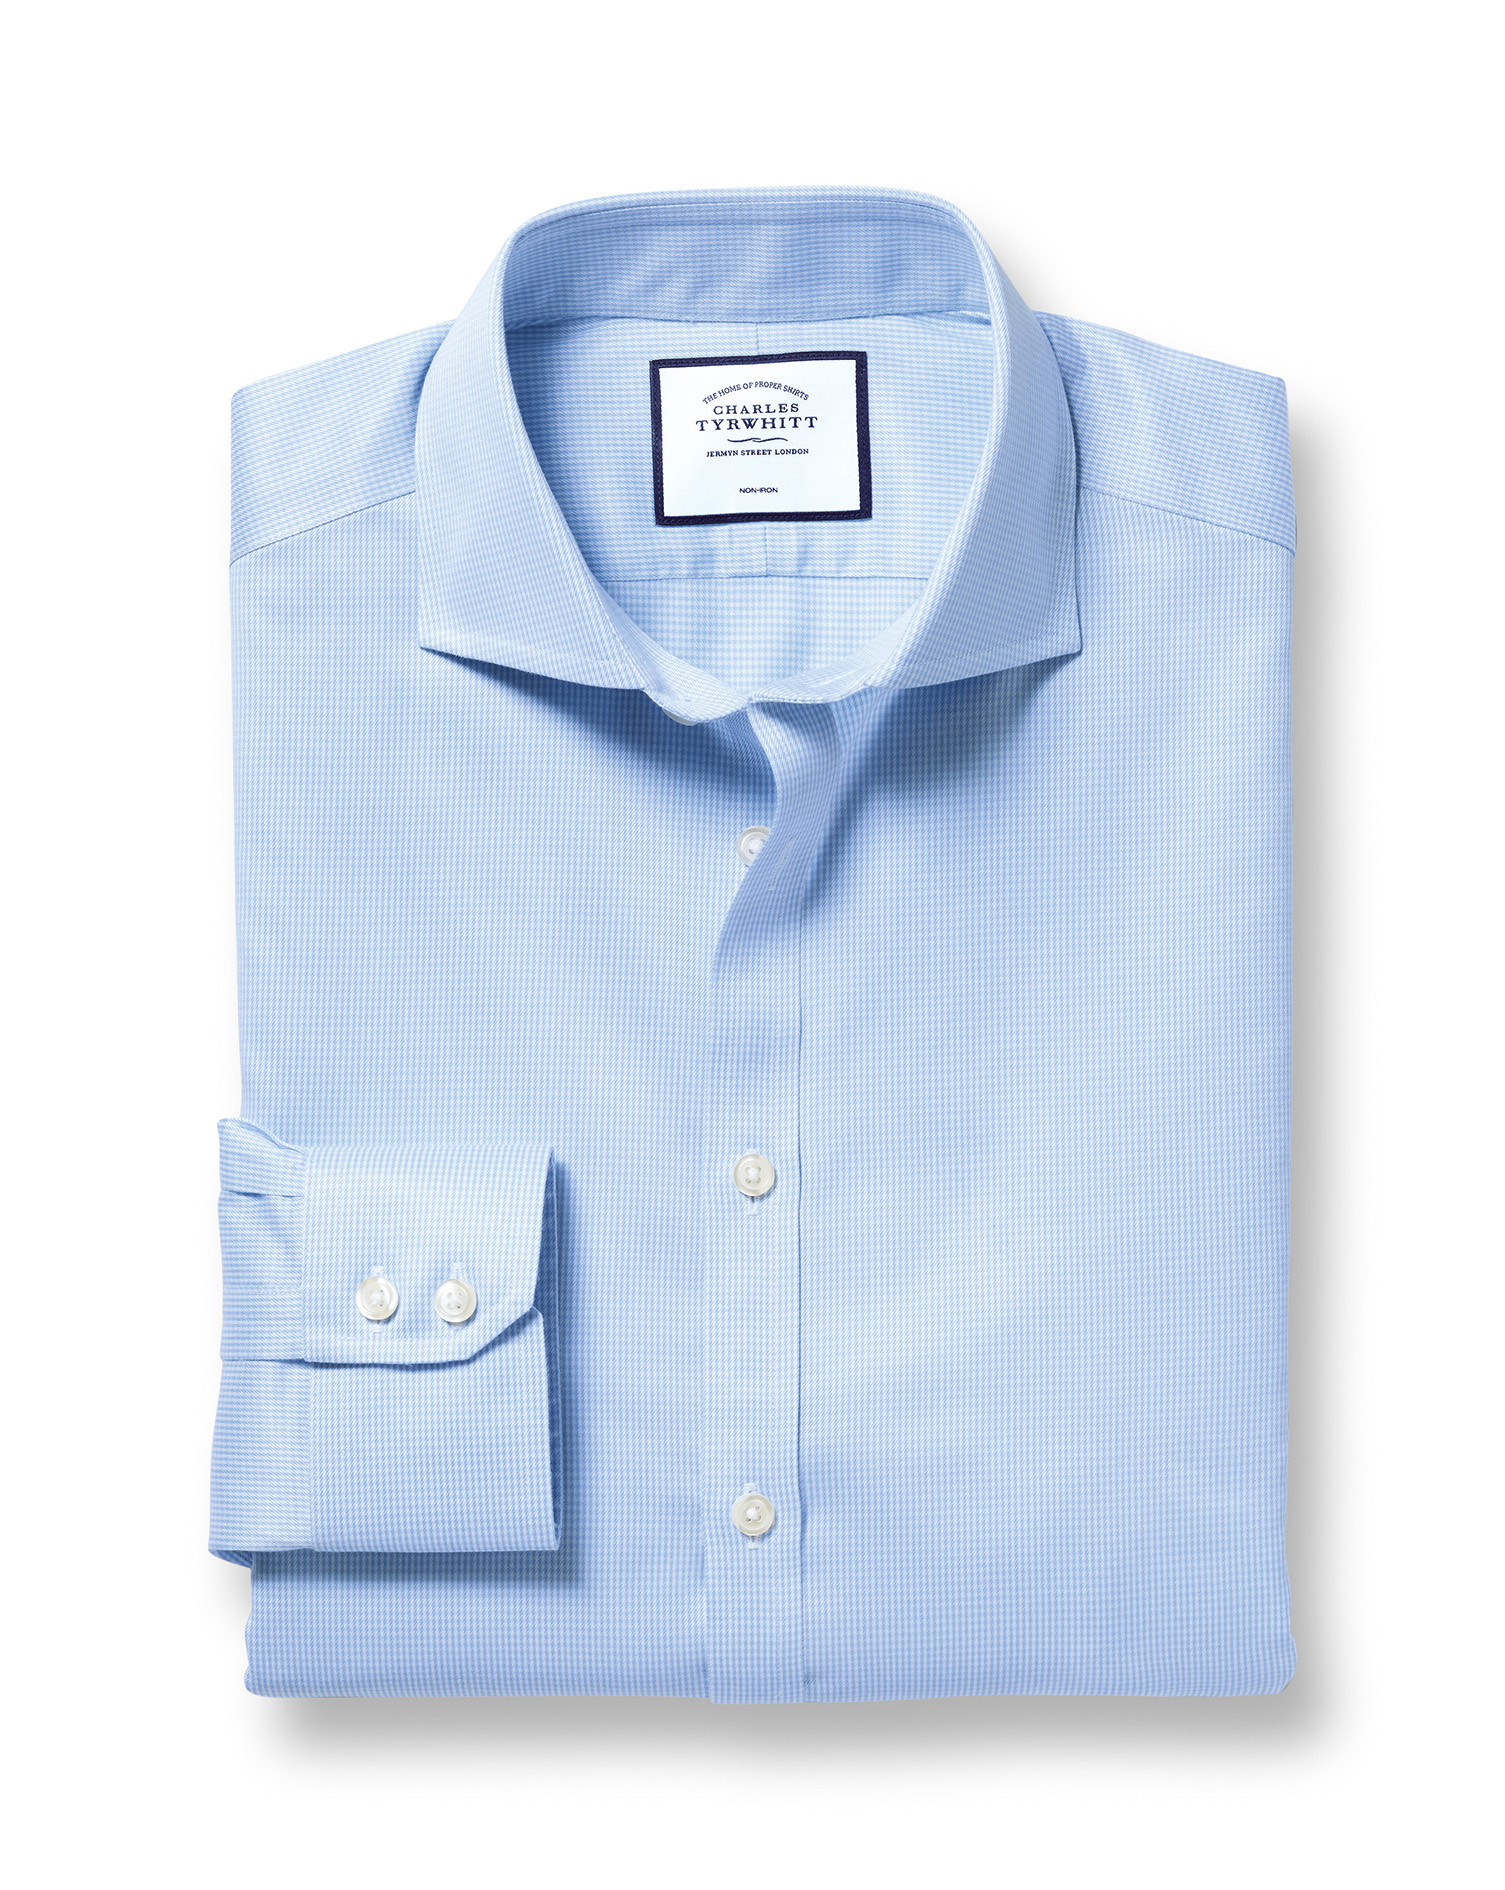 Extra Slim Fit Cutaway Non-Iron Puppytooth Sky Blue Cotton Formal Shirt Single Cuff Size 16.5/34 by